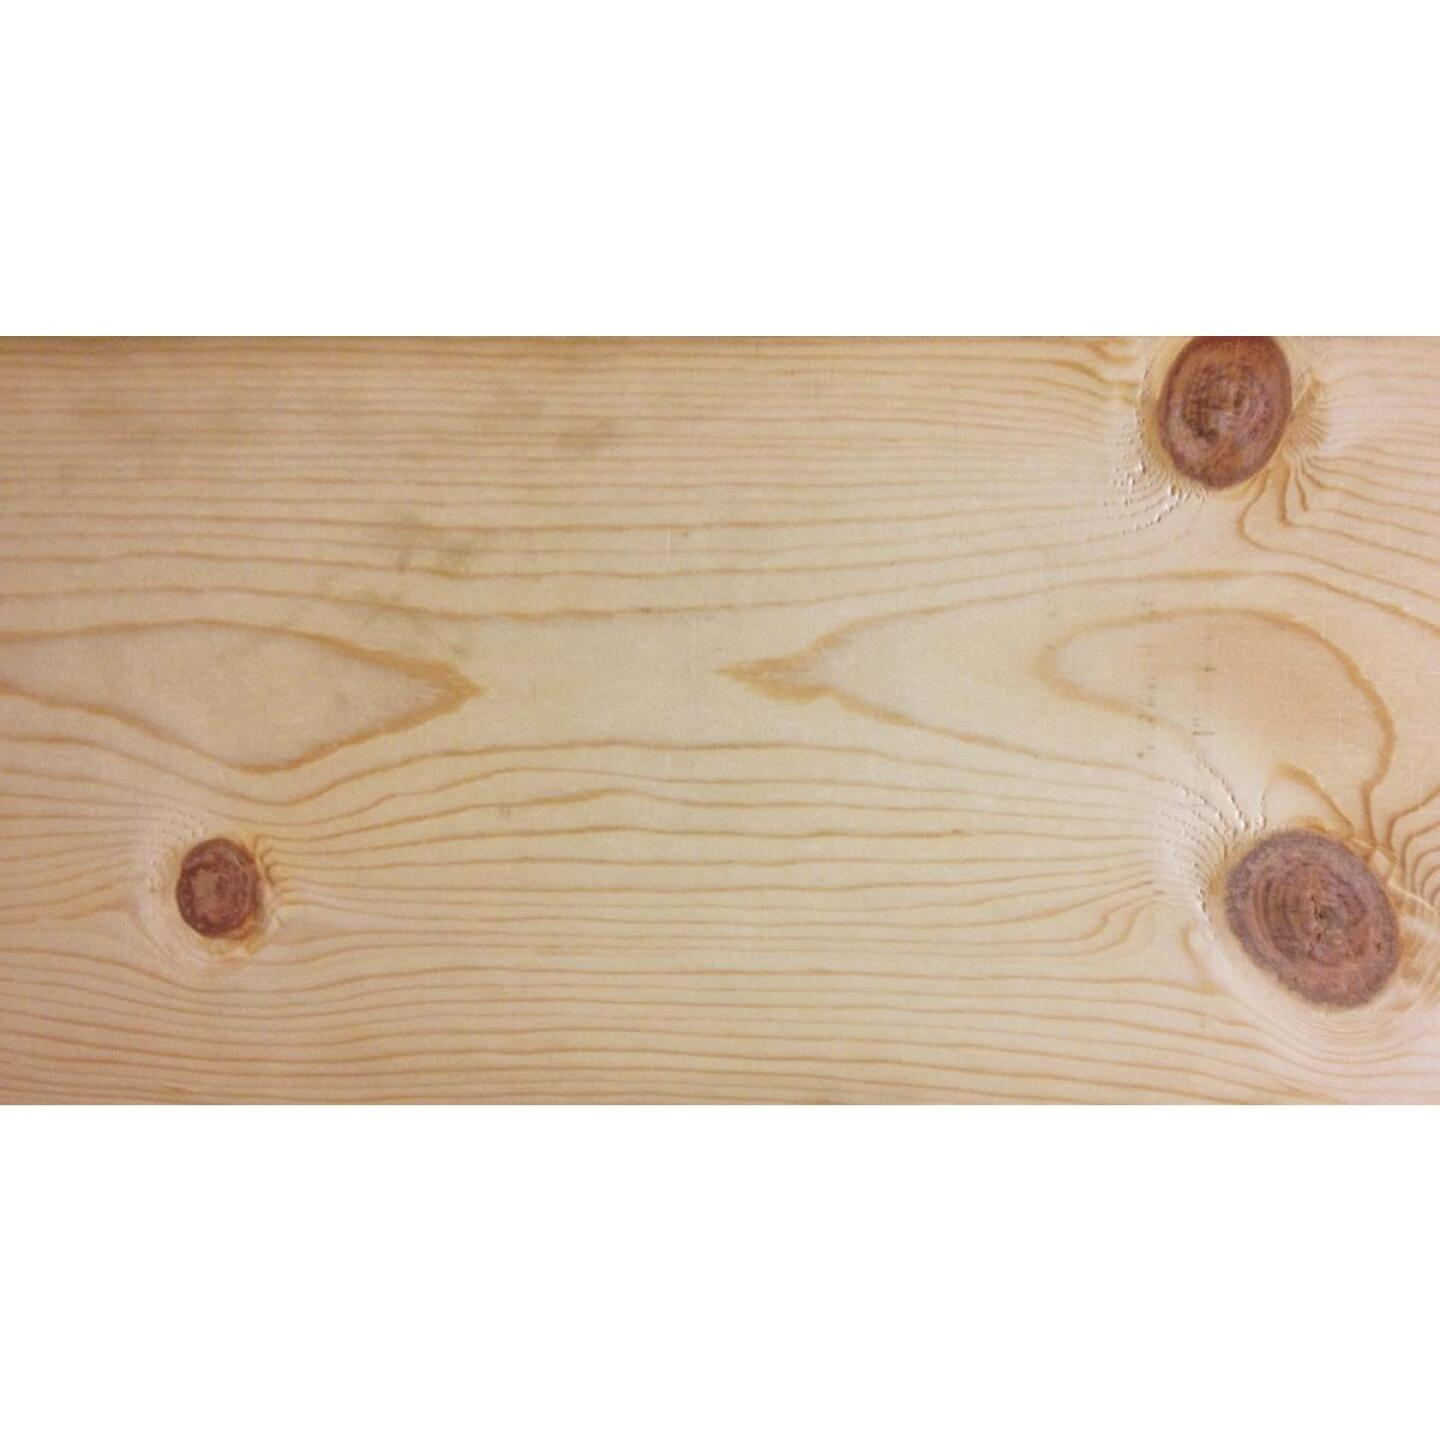 Universal Forest Products 1 In. x 4 In. x 8 Ft. Appearance Grade Board Image 1